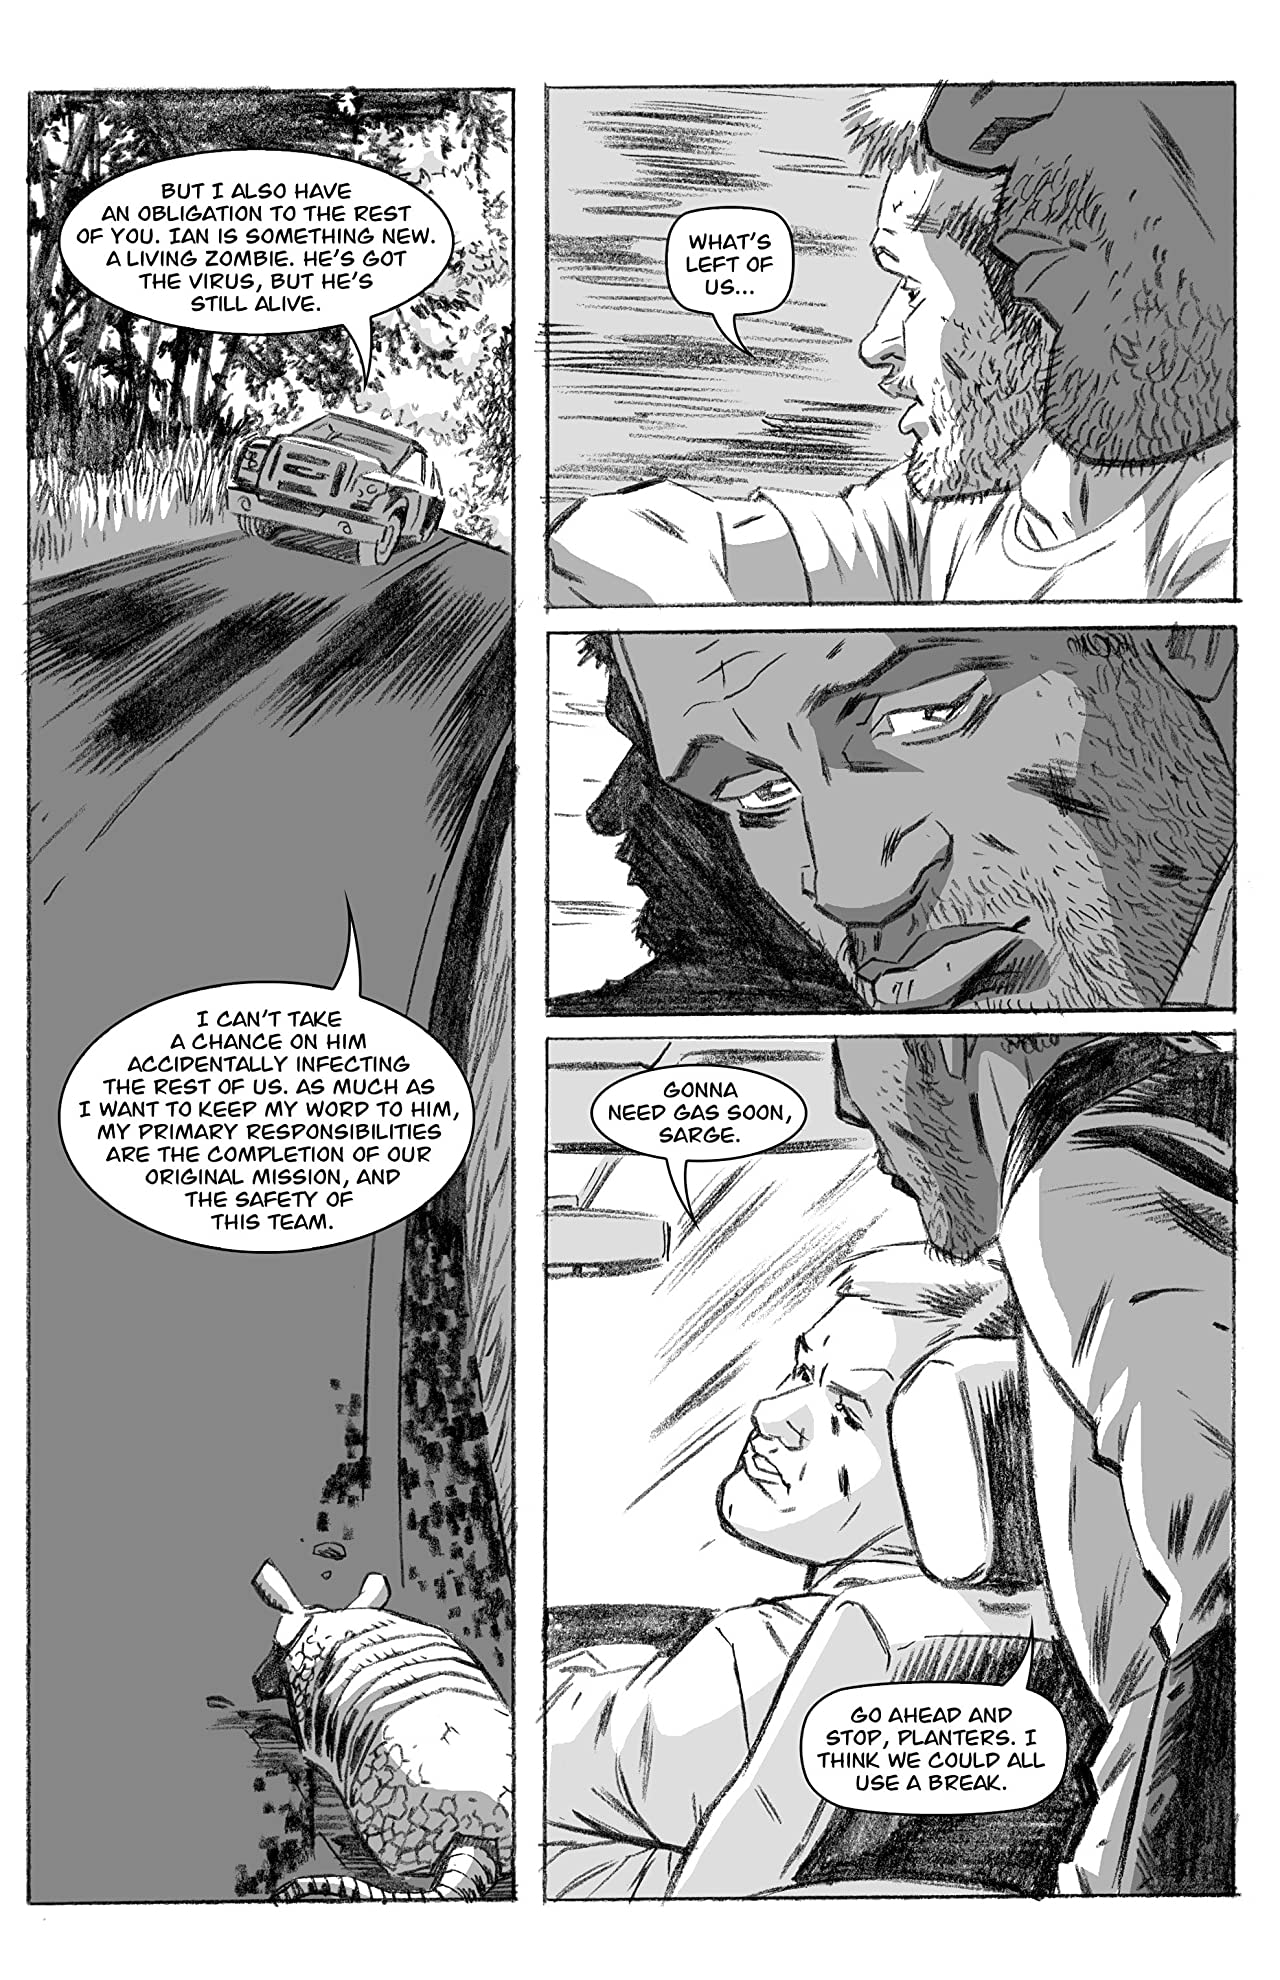 The Last Zombie: The End #4 (of 5)